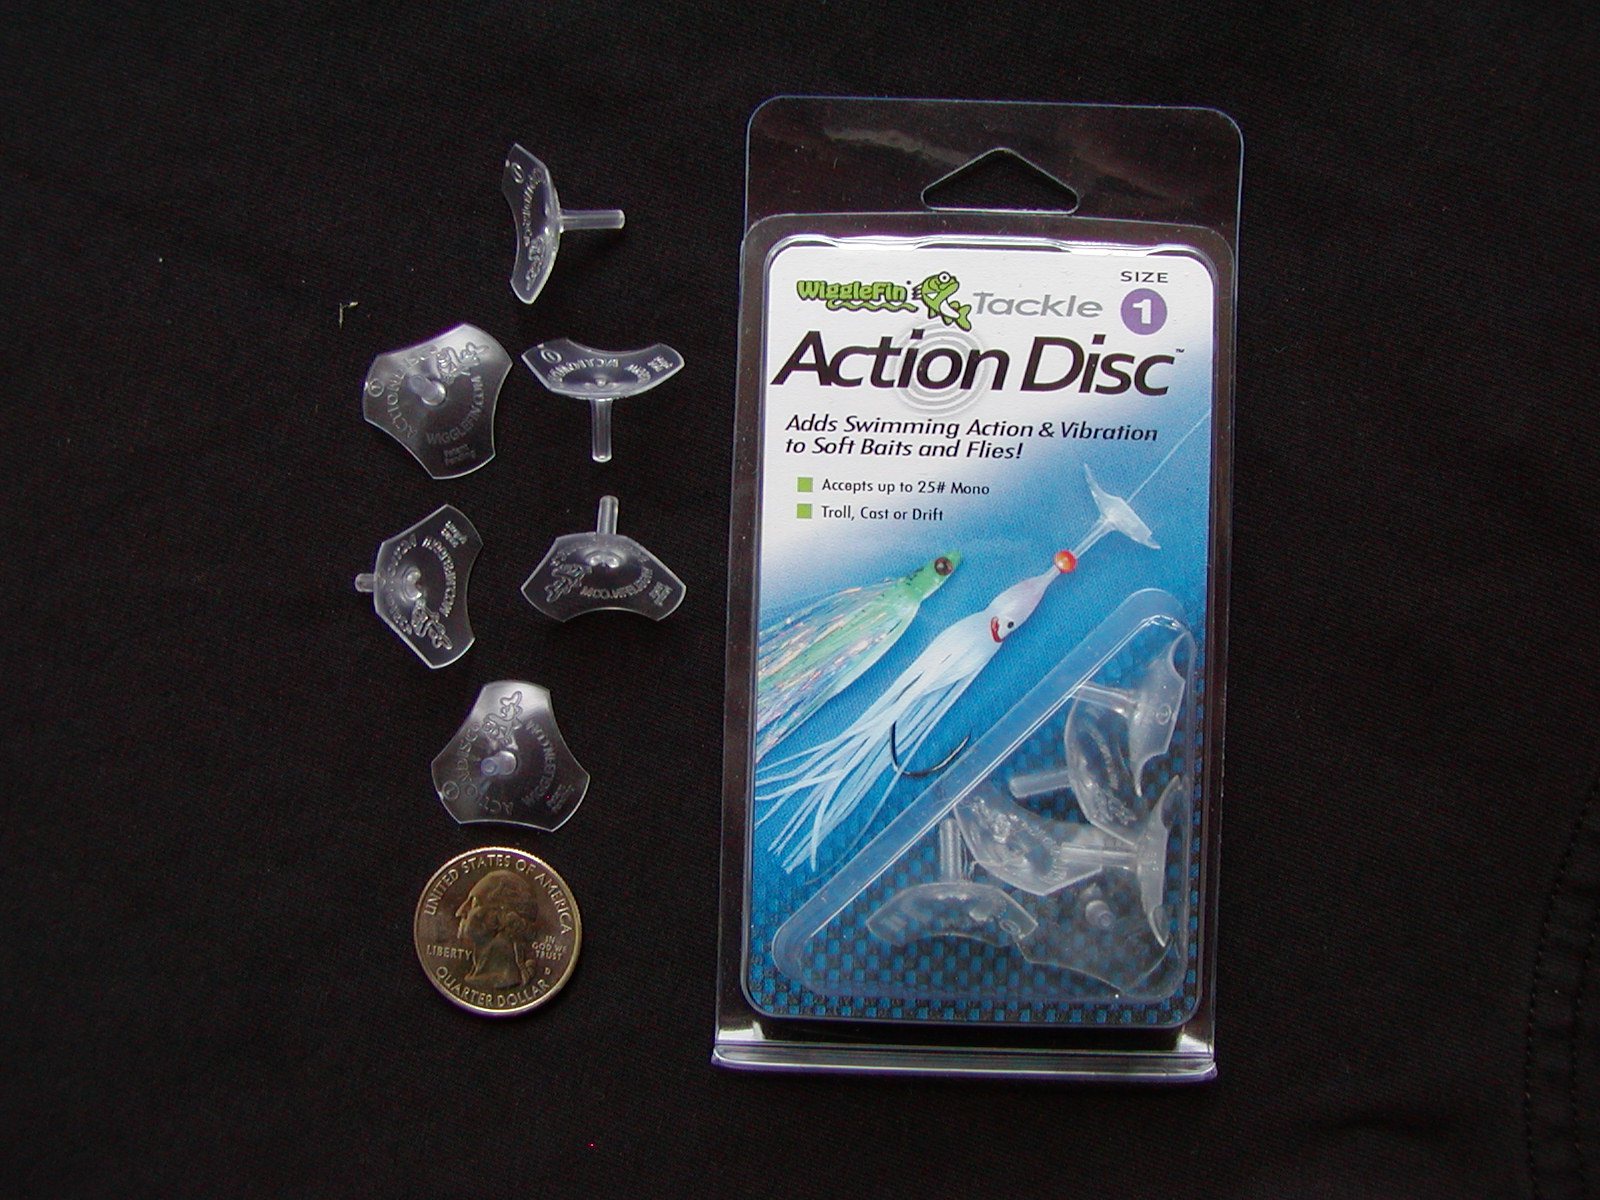 Size #1 Action Disc, Delta Series  $4.75 per package of 6 pieces